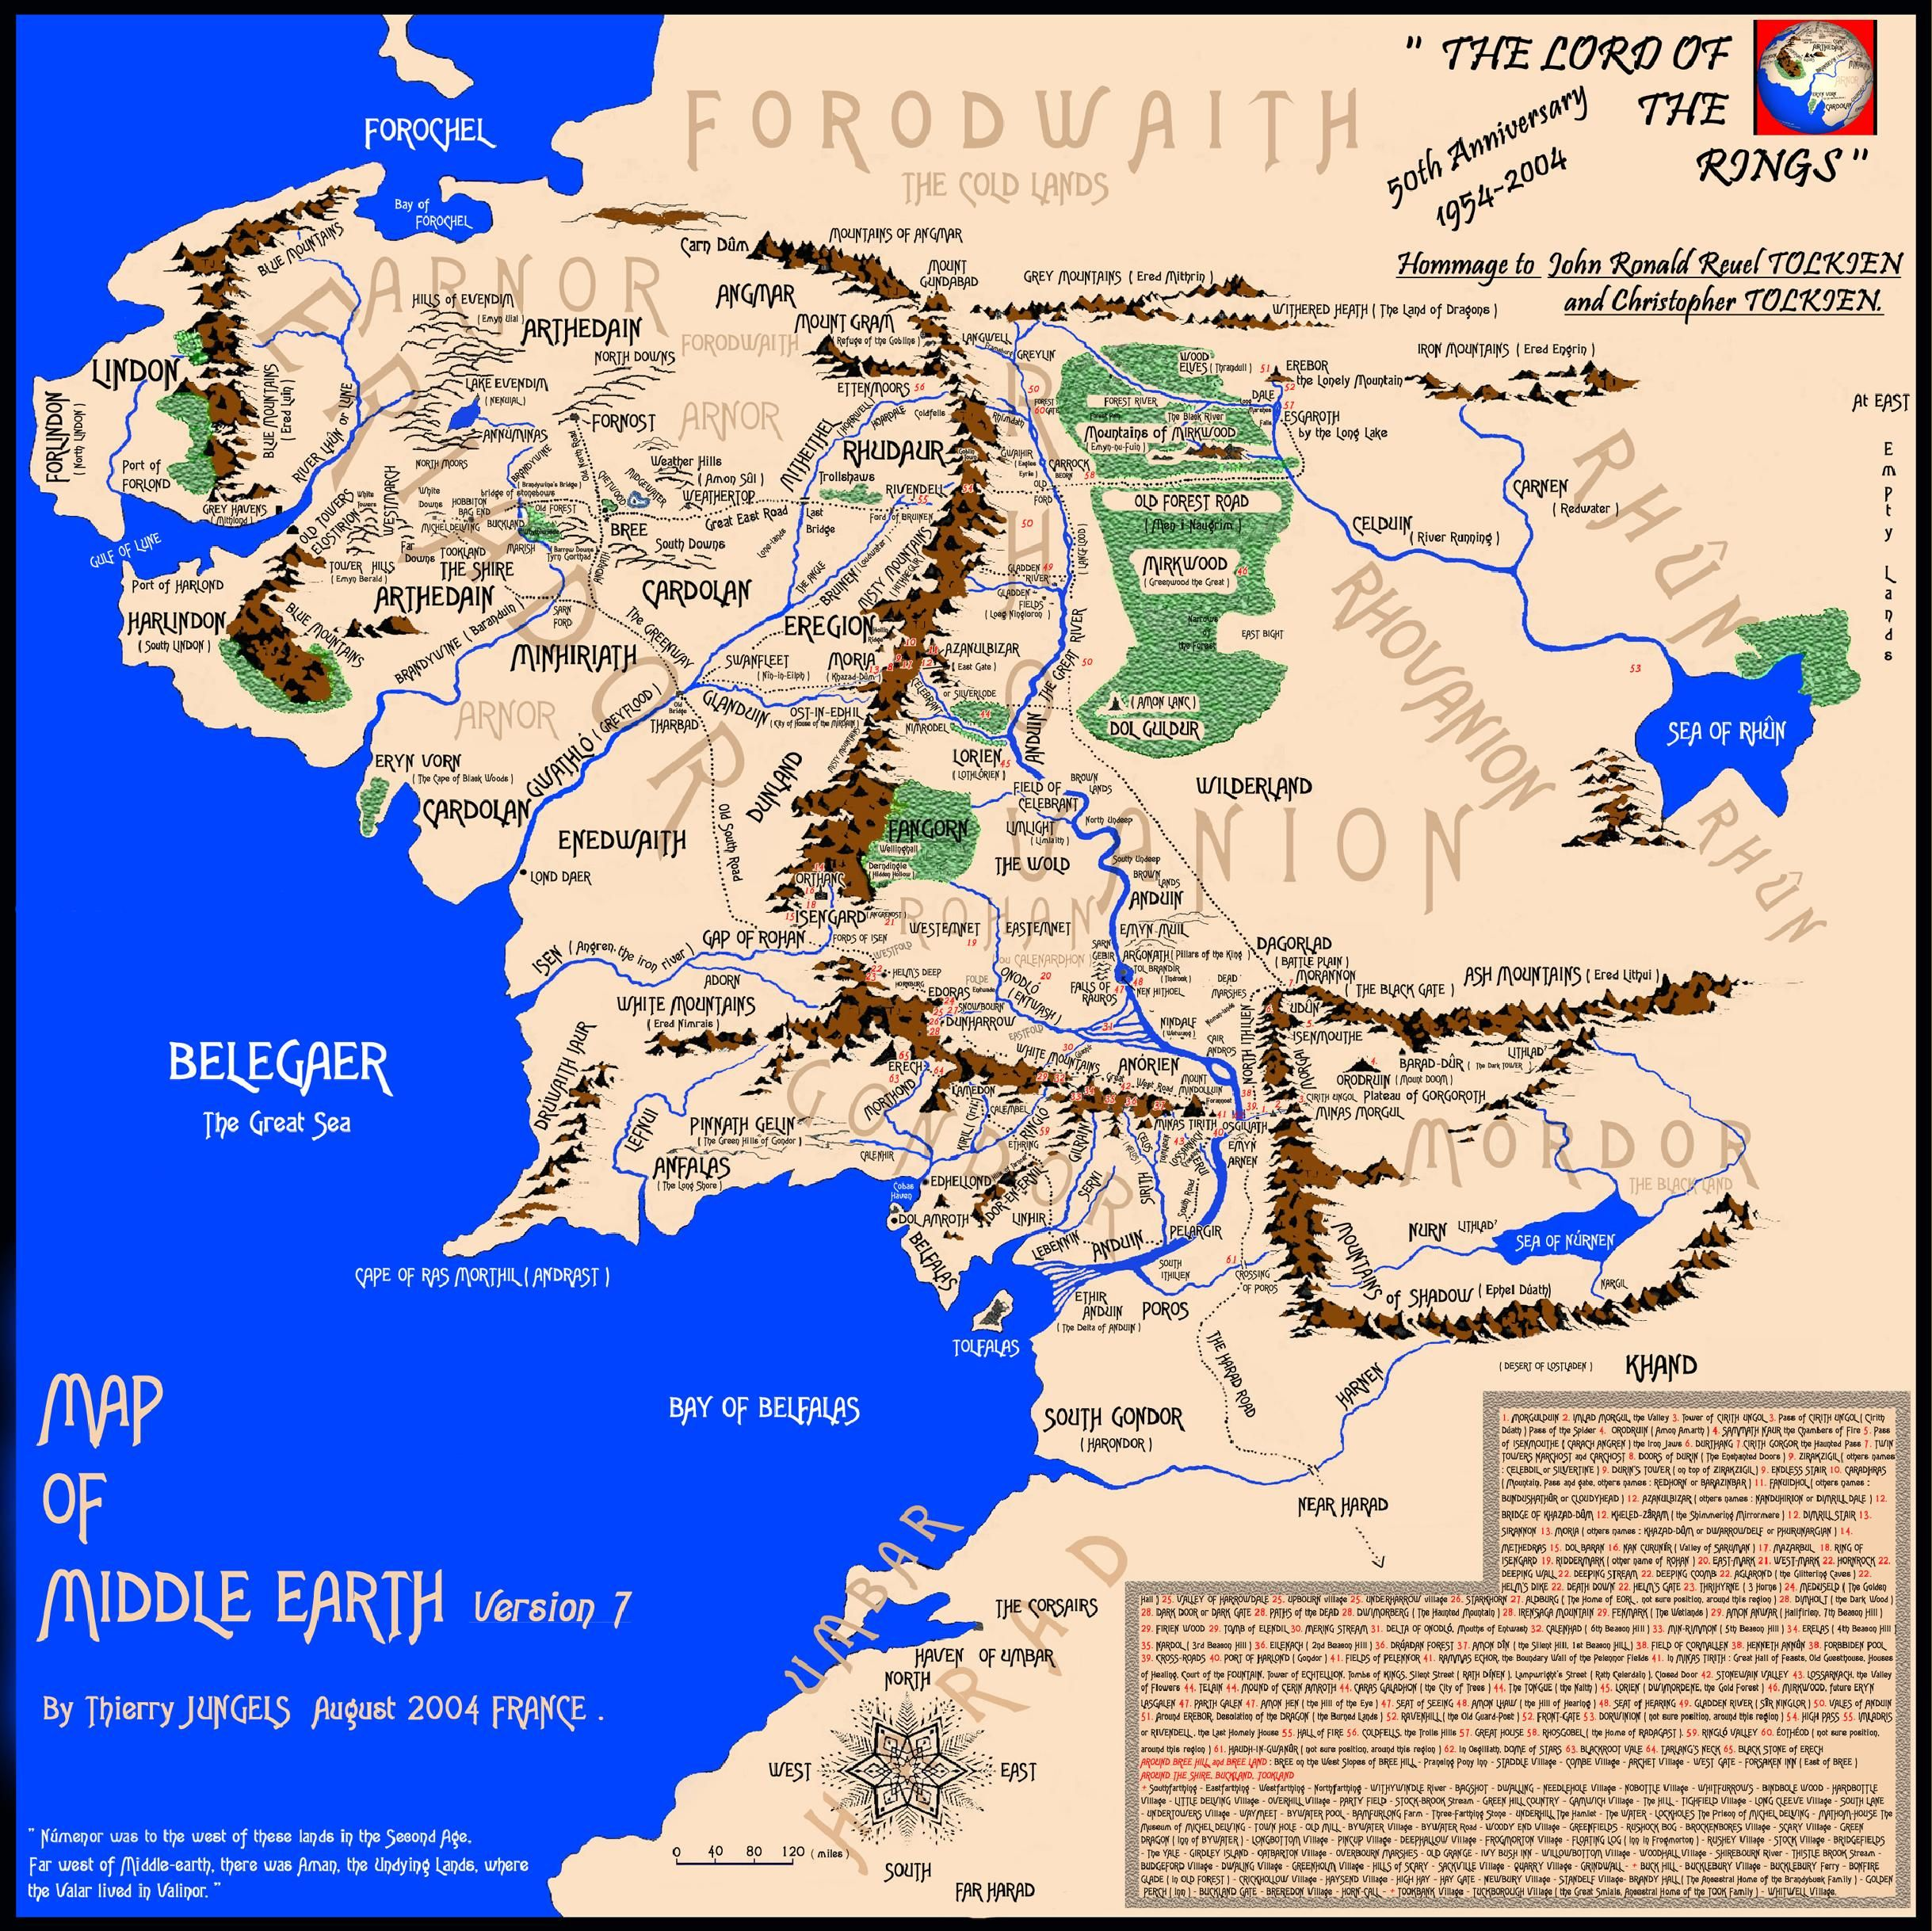 THE MAP OF MIDDLE EARTH. Wonderfully detailed presentation.